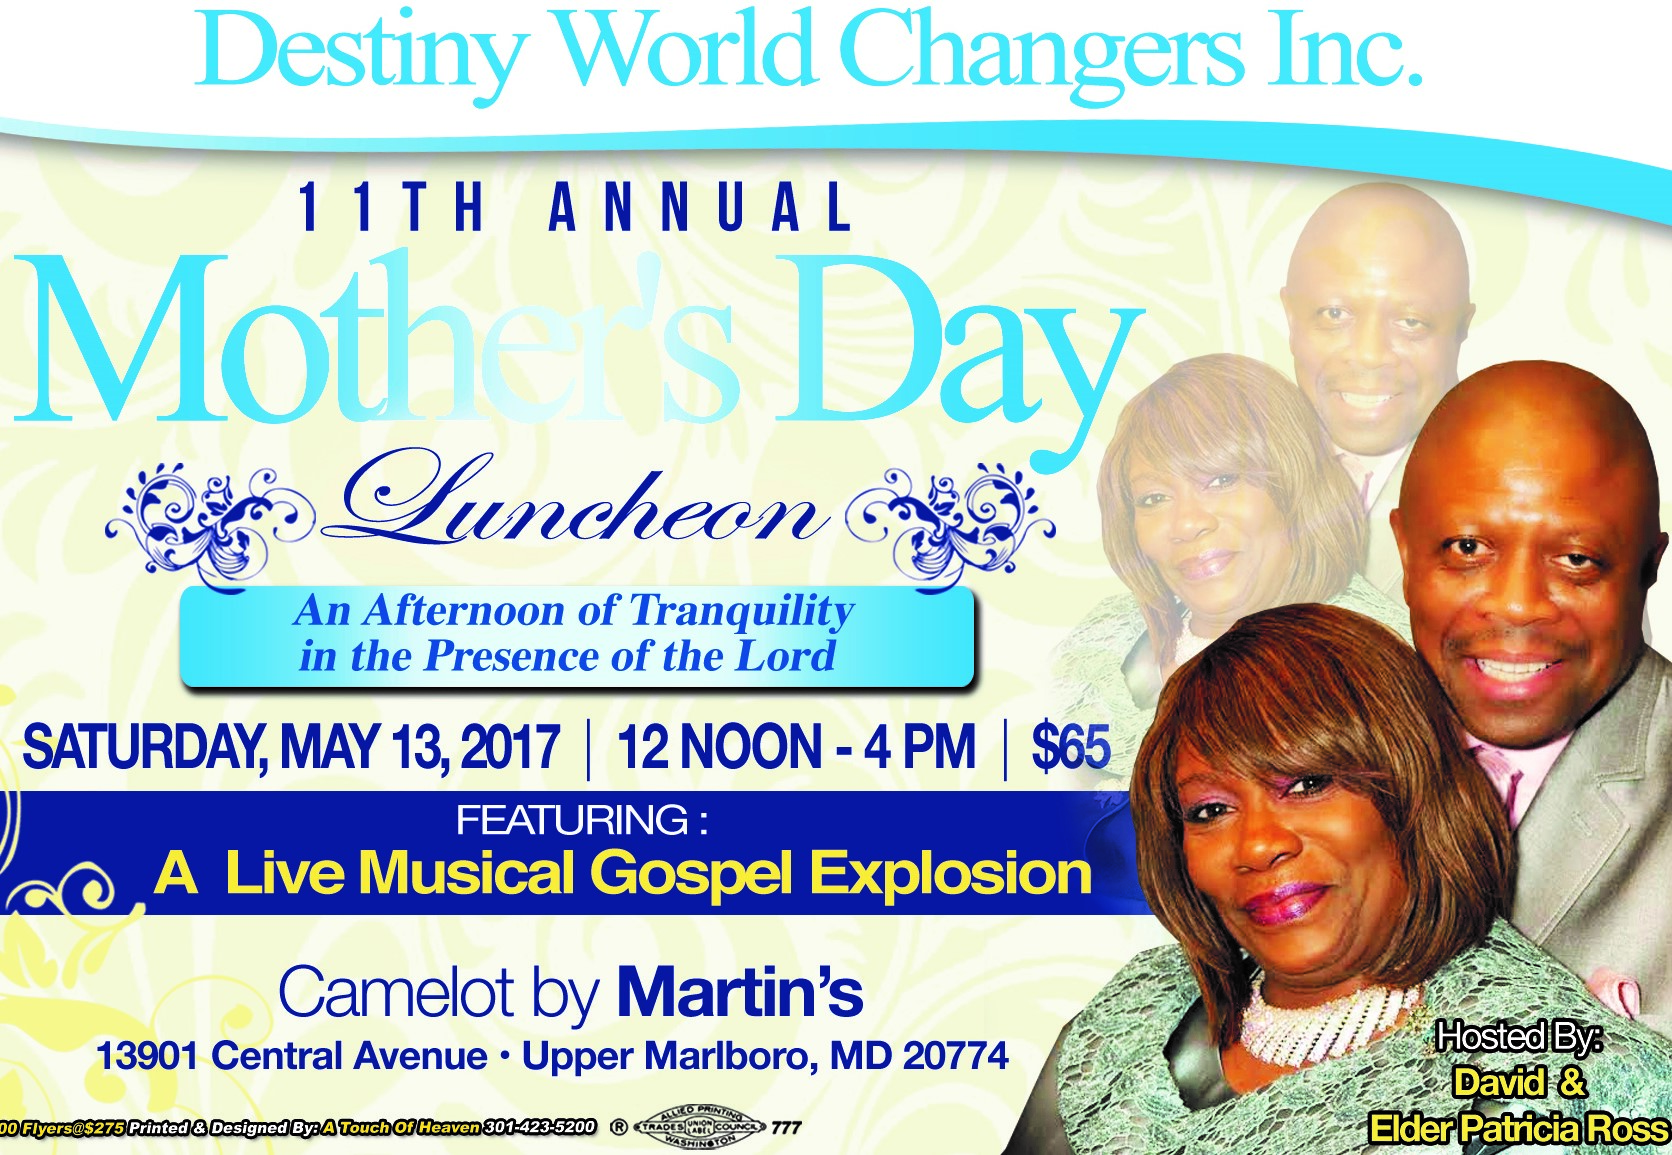 DWC 11th Annual Mother's Day Luncheon